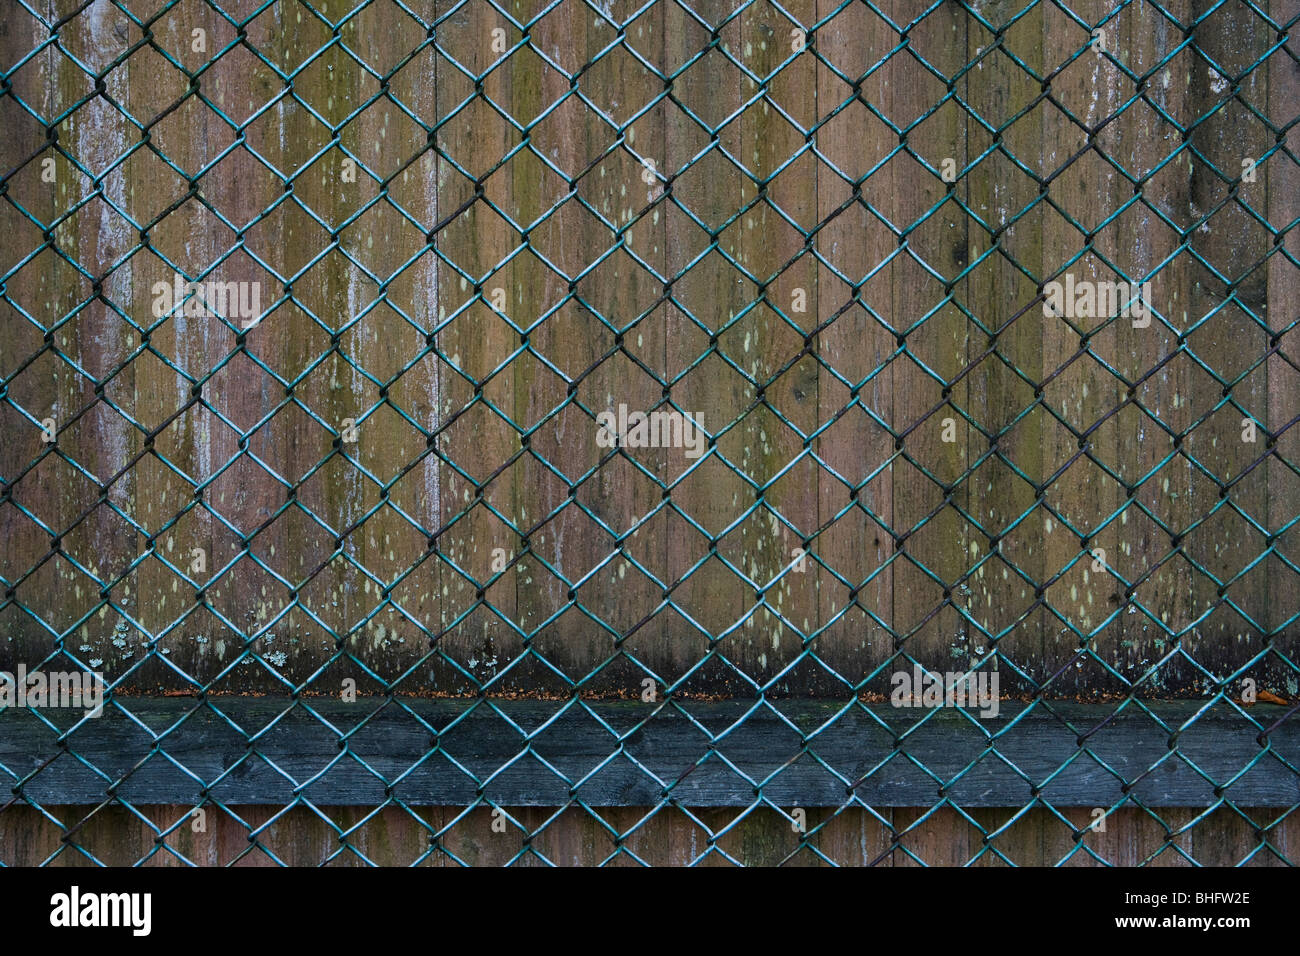 An old chain-link fence. - Stock Image